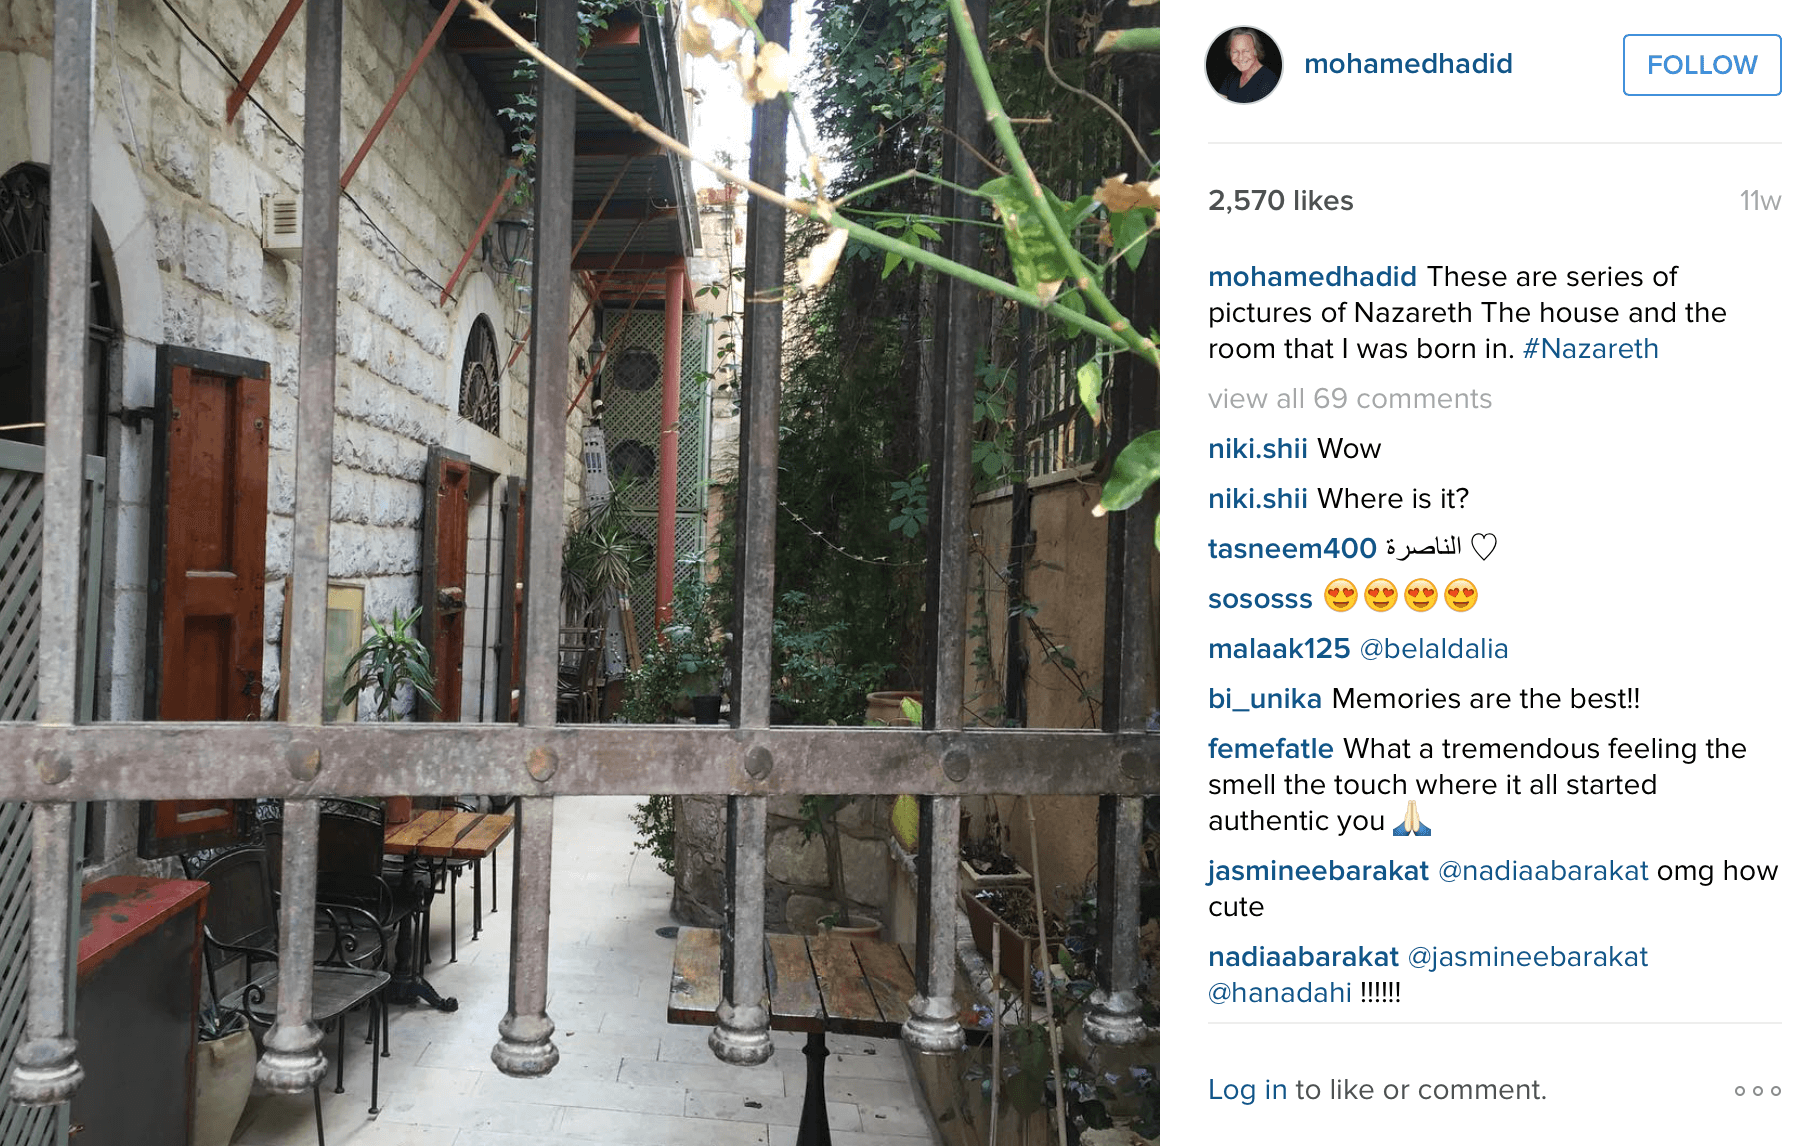 House in Nazareth where Mohamed Hadid was born. (Photo: Instagram/Mohamed Hadid)